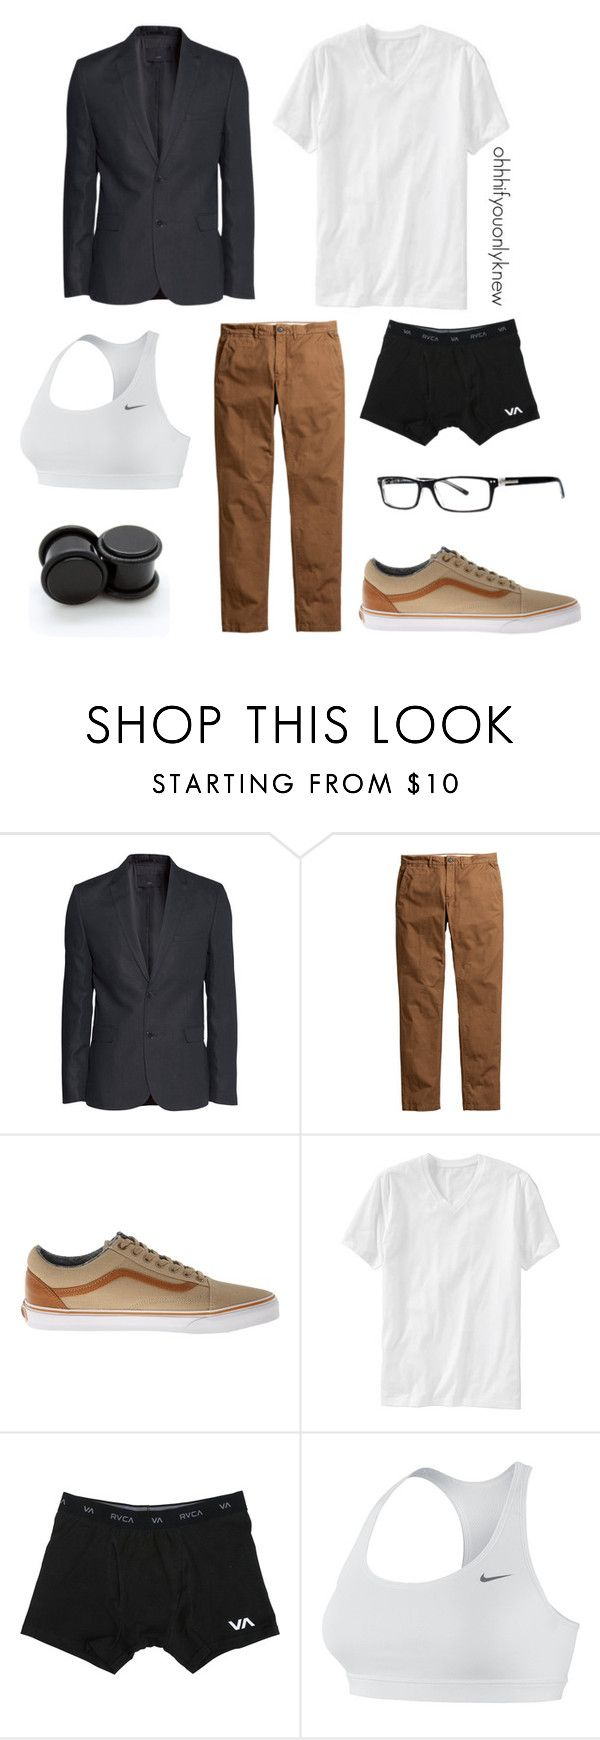 """""""Untitled #228"""" by ohhhifyouonlyknew ❤ liked on Polyvore featuring H&M, Vans, Old Navy, RVCA, NIKE, menswear, tomboy and androgynous"""